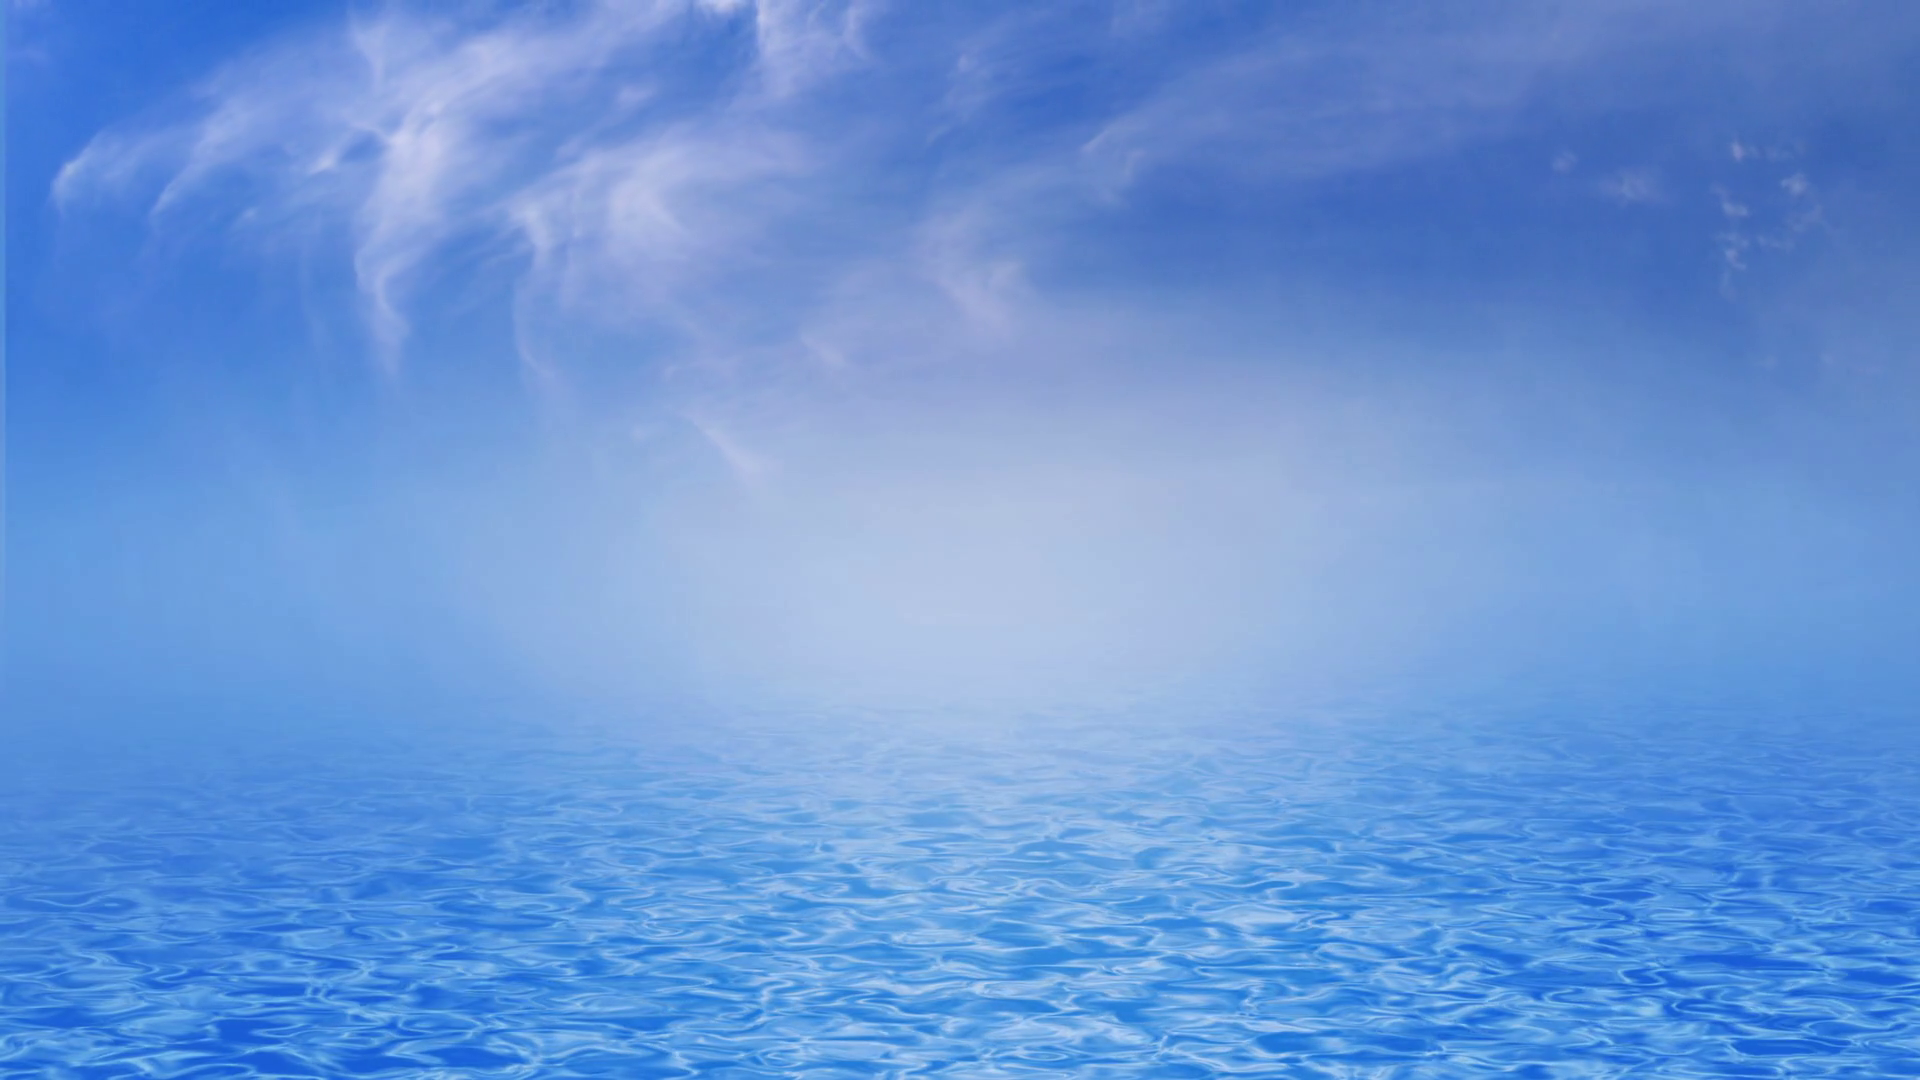 Blue sea, ocean with waves and clear blue sky and clouds, UHD 4k 3840x2160.  Motion Background - VideoBlocks - Clear Blue Sky PNG